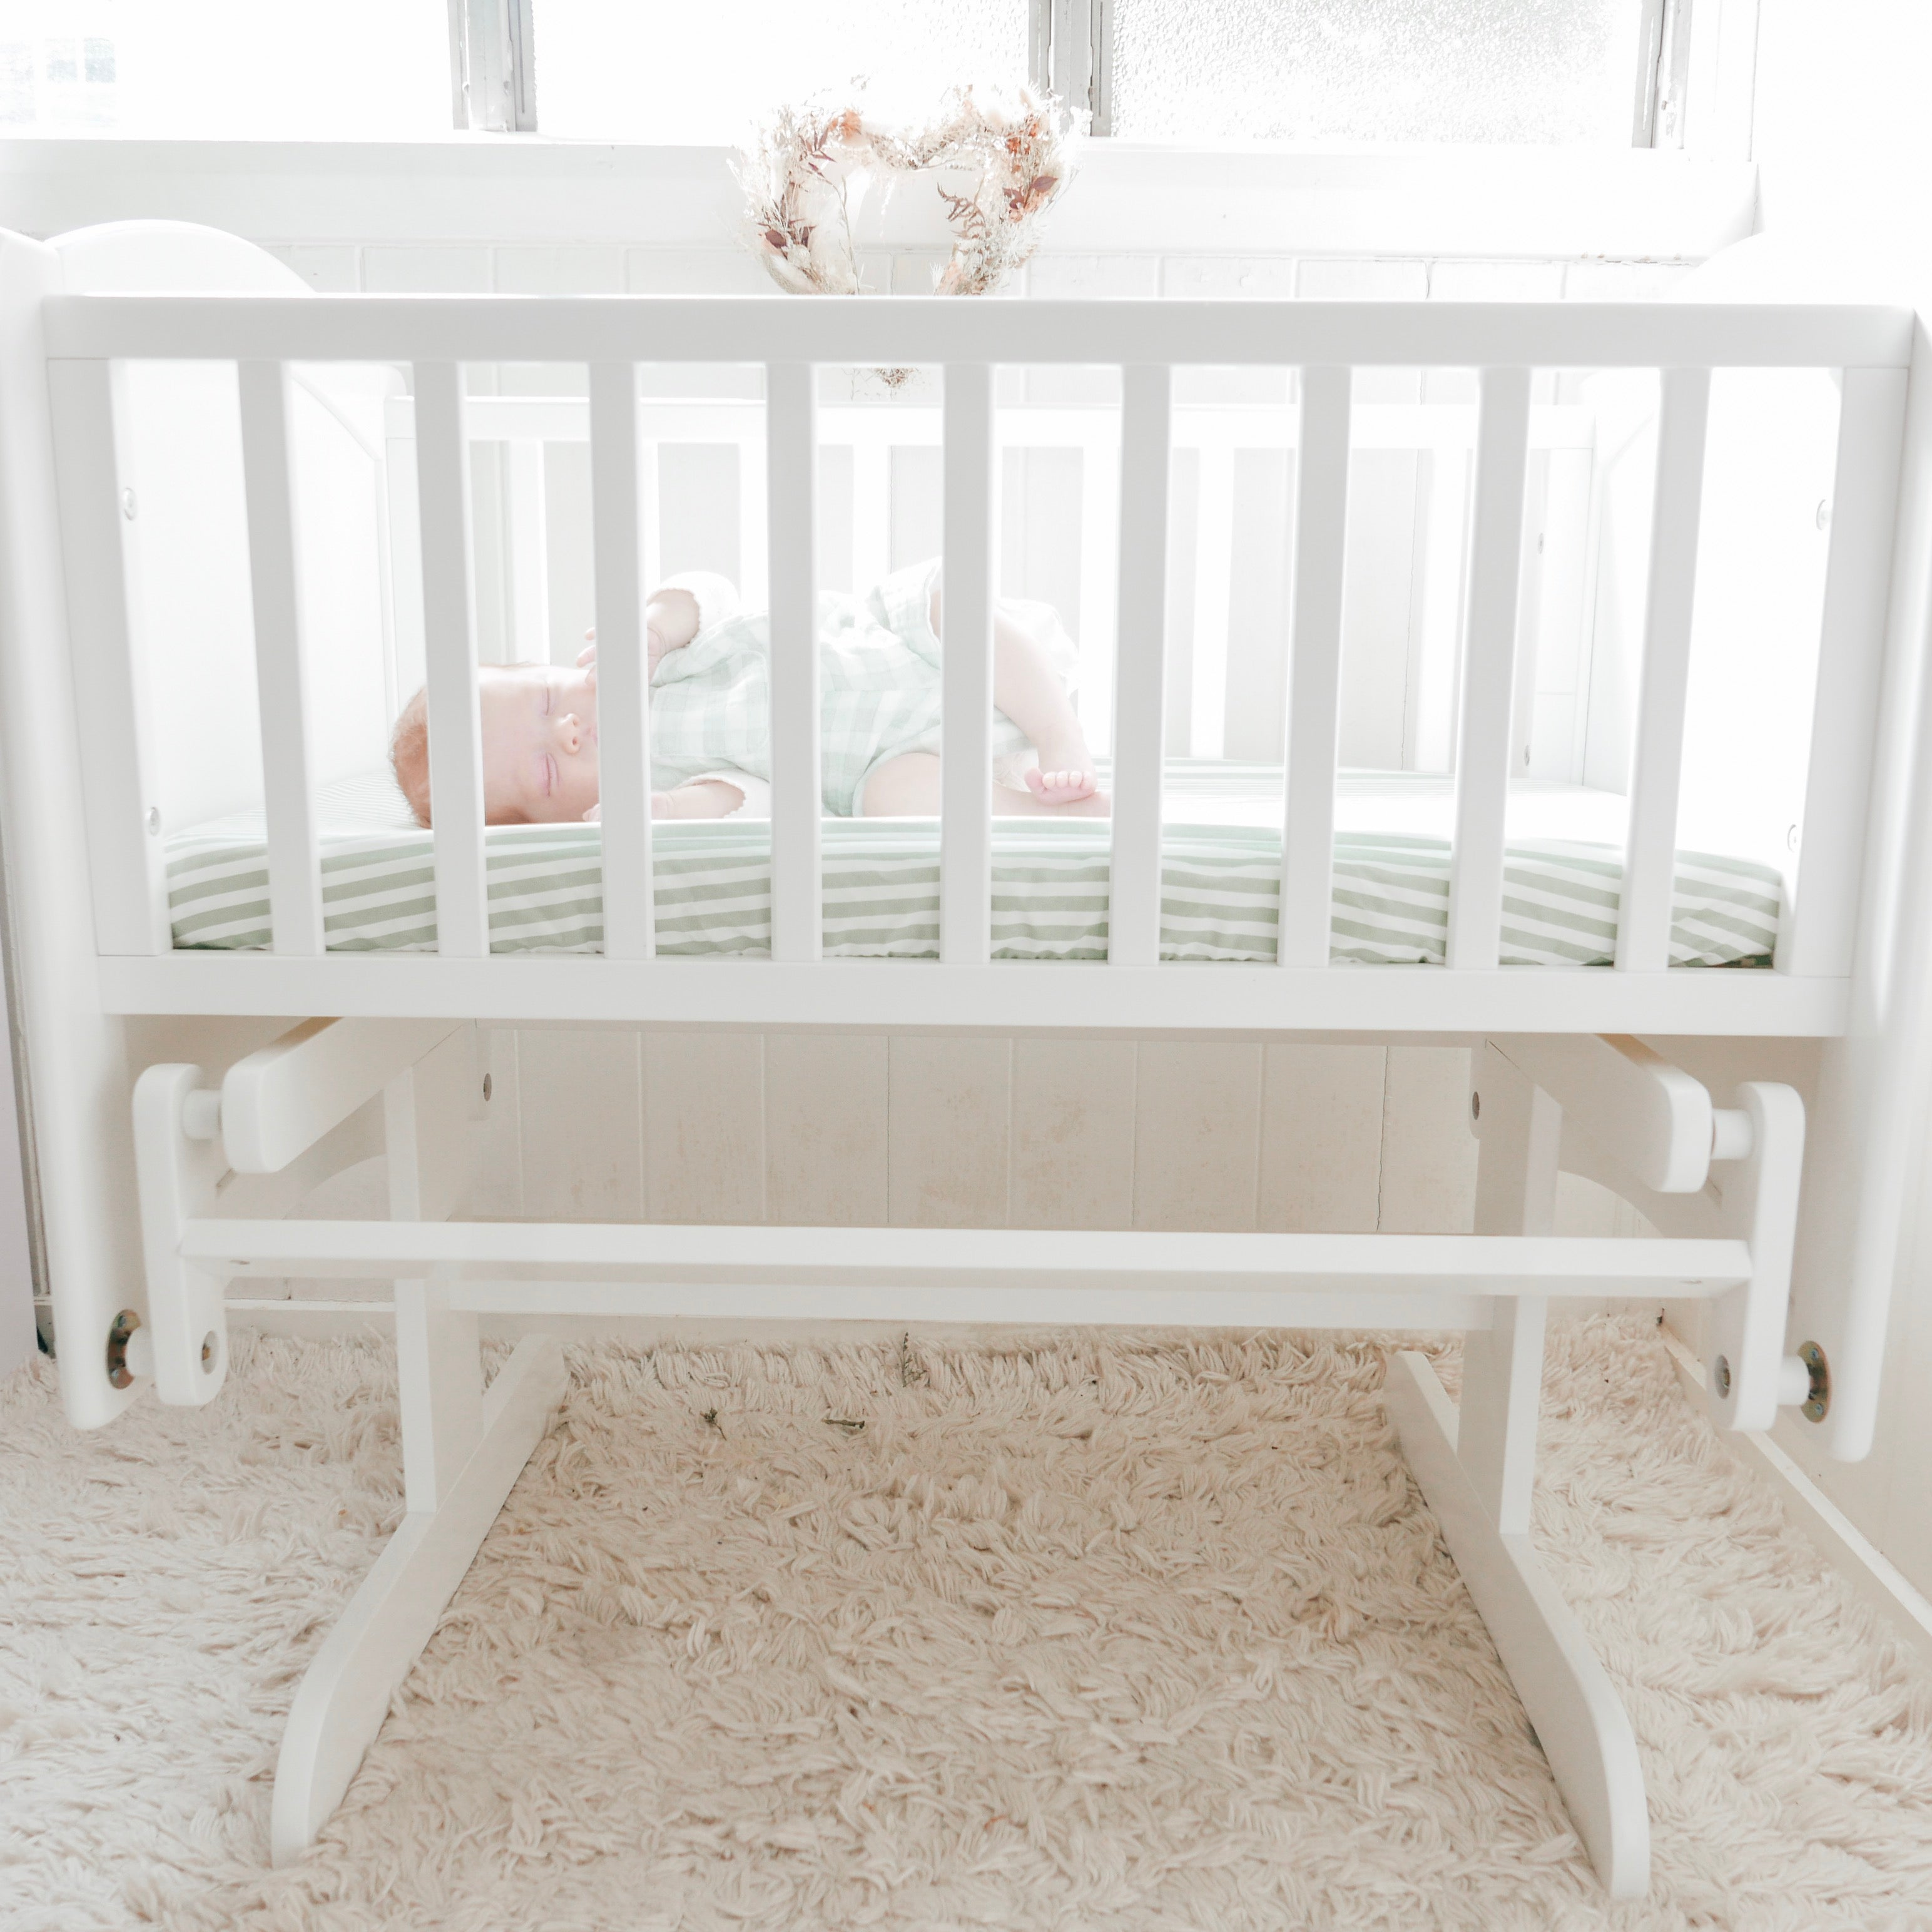 Newborn in Rocking Cradle showing size